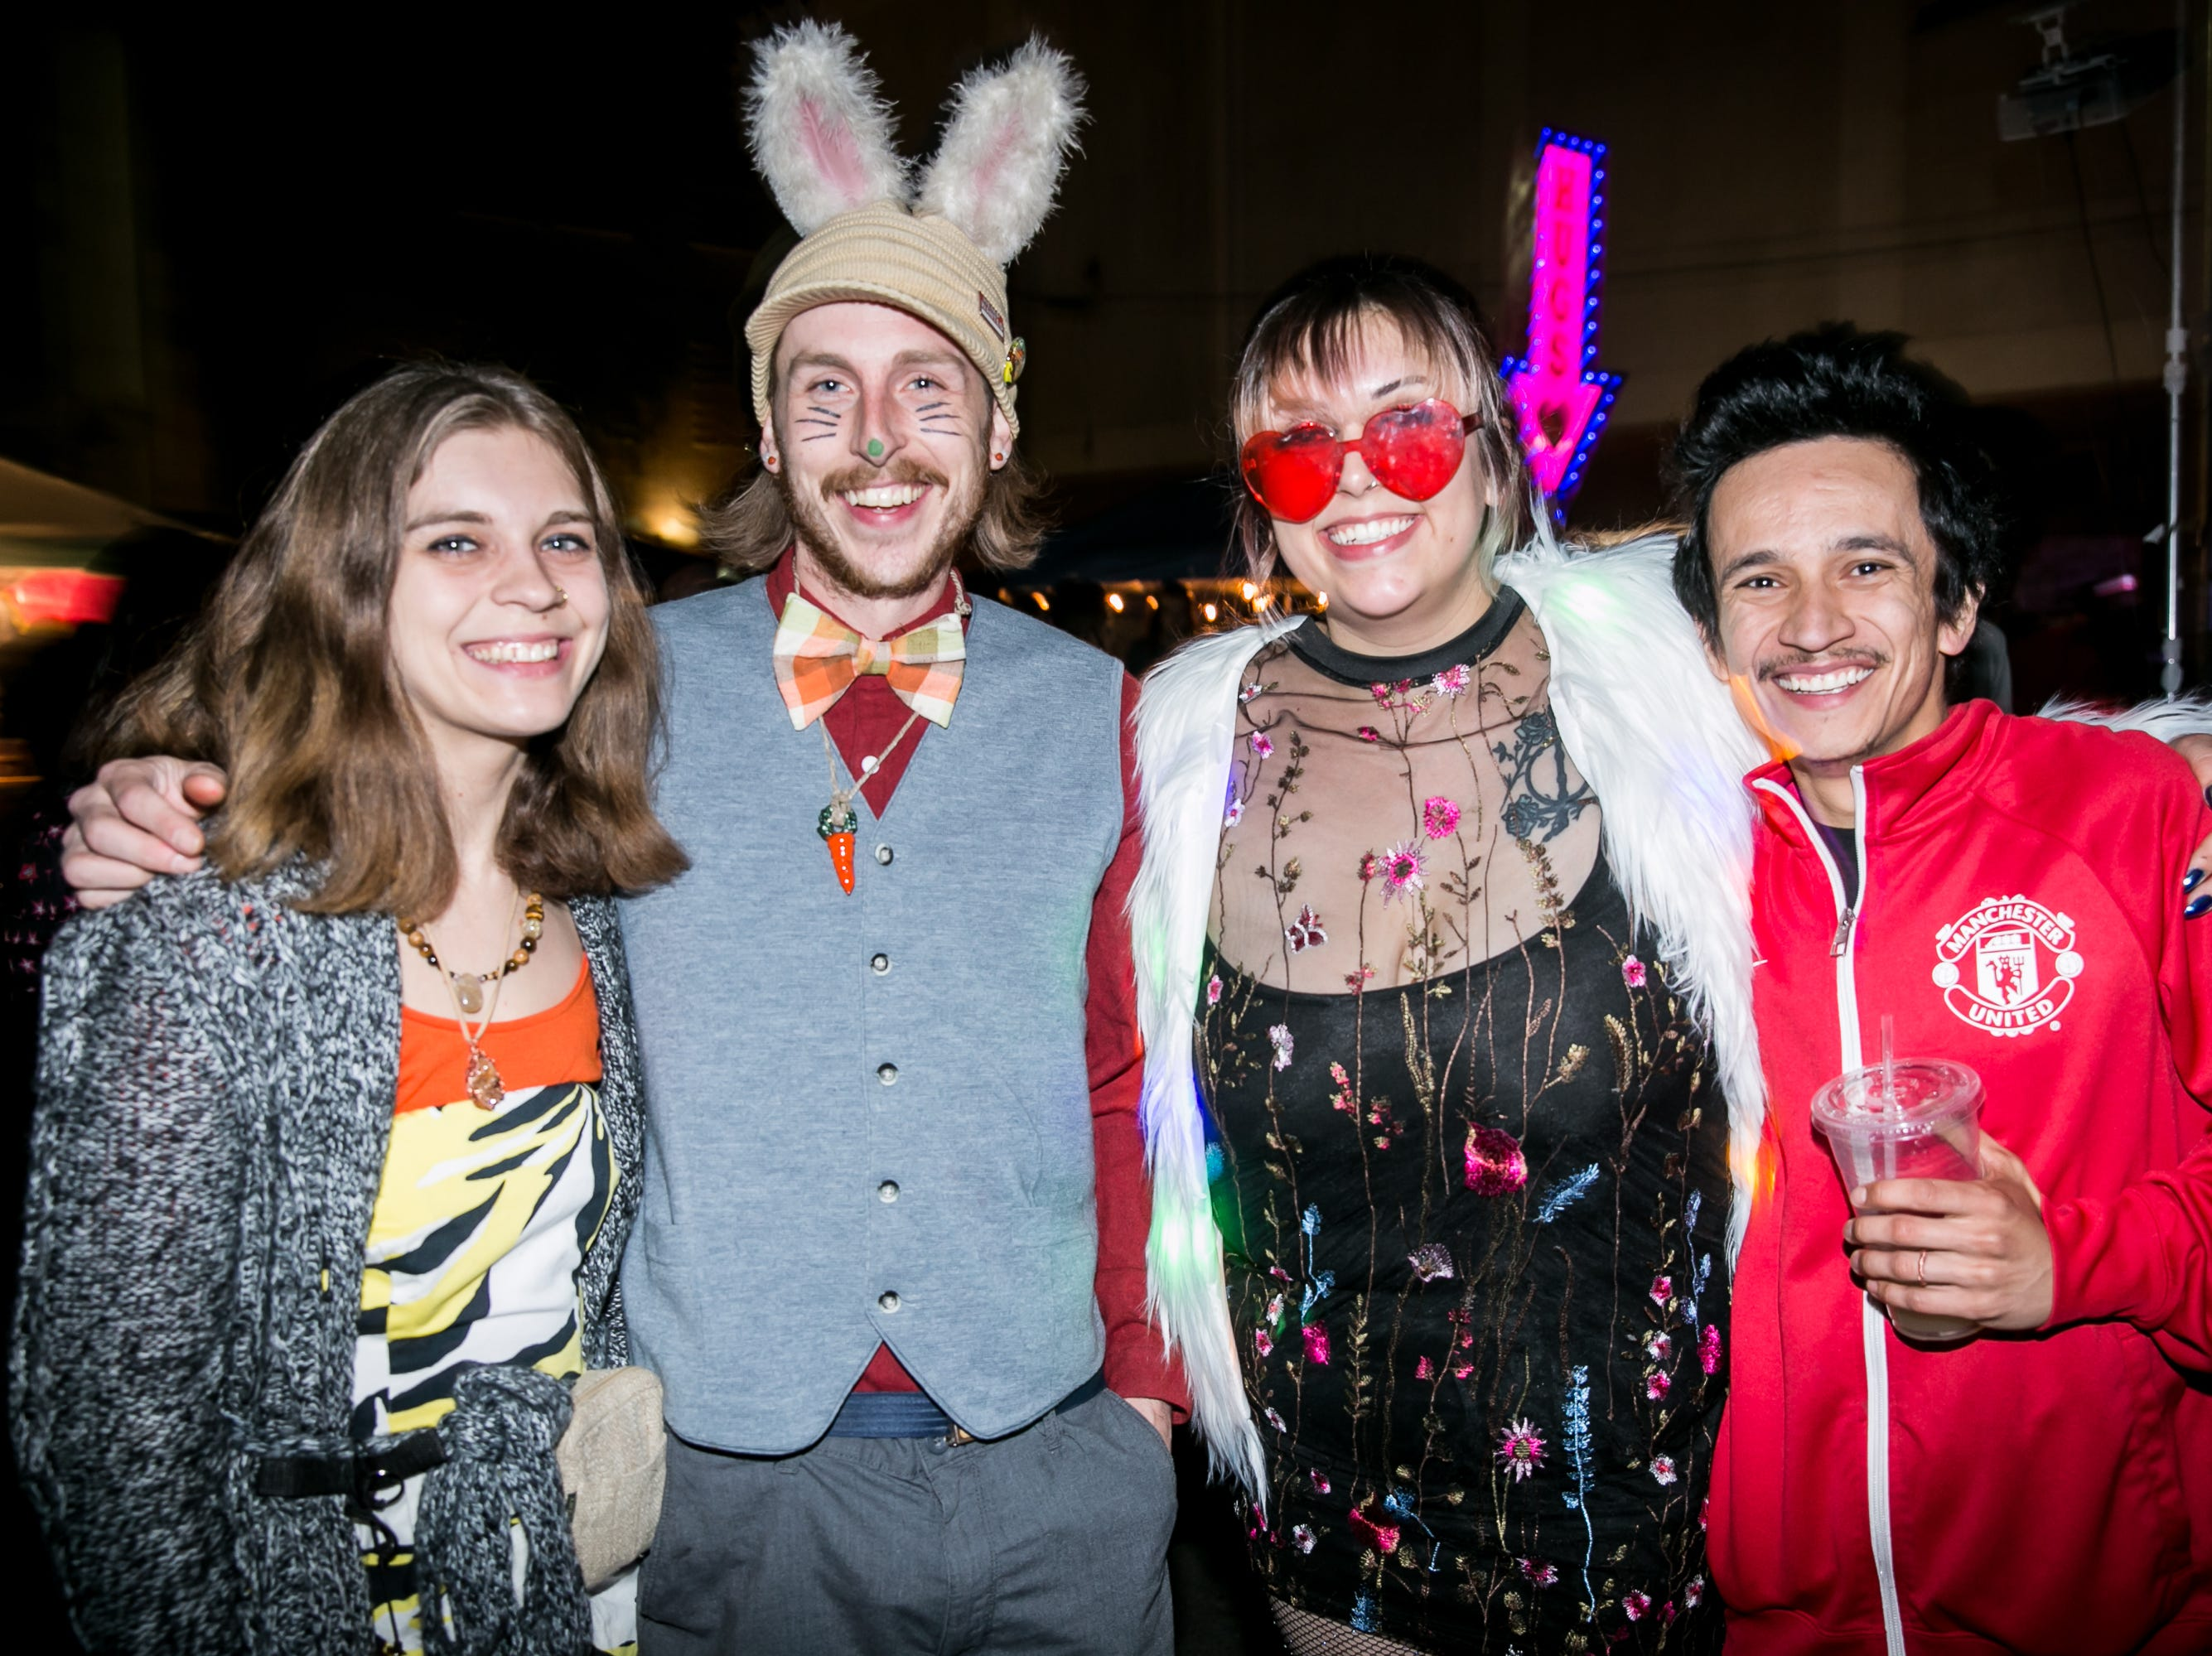 These pals took a trip to wonderland at the Full Moon Festival at the Pressroom on March 23, 2019.